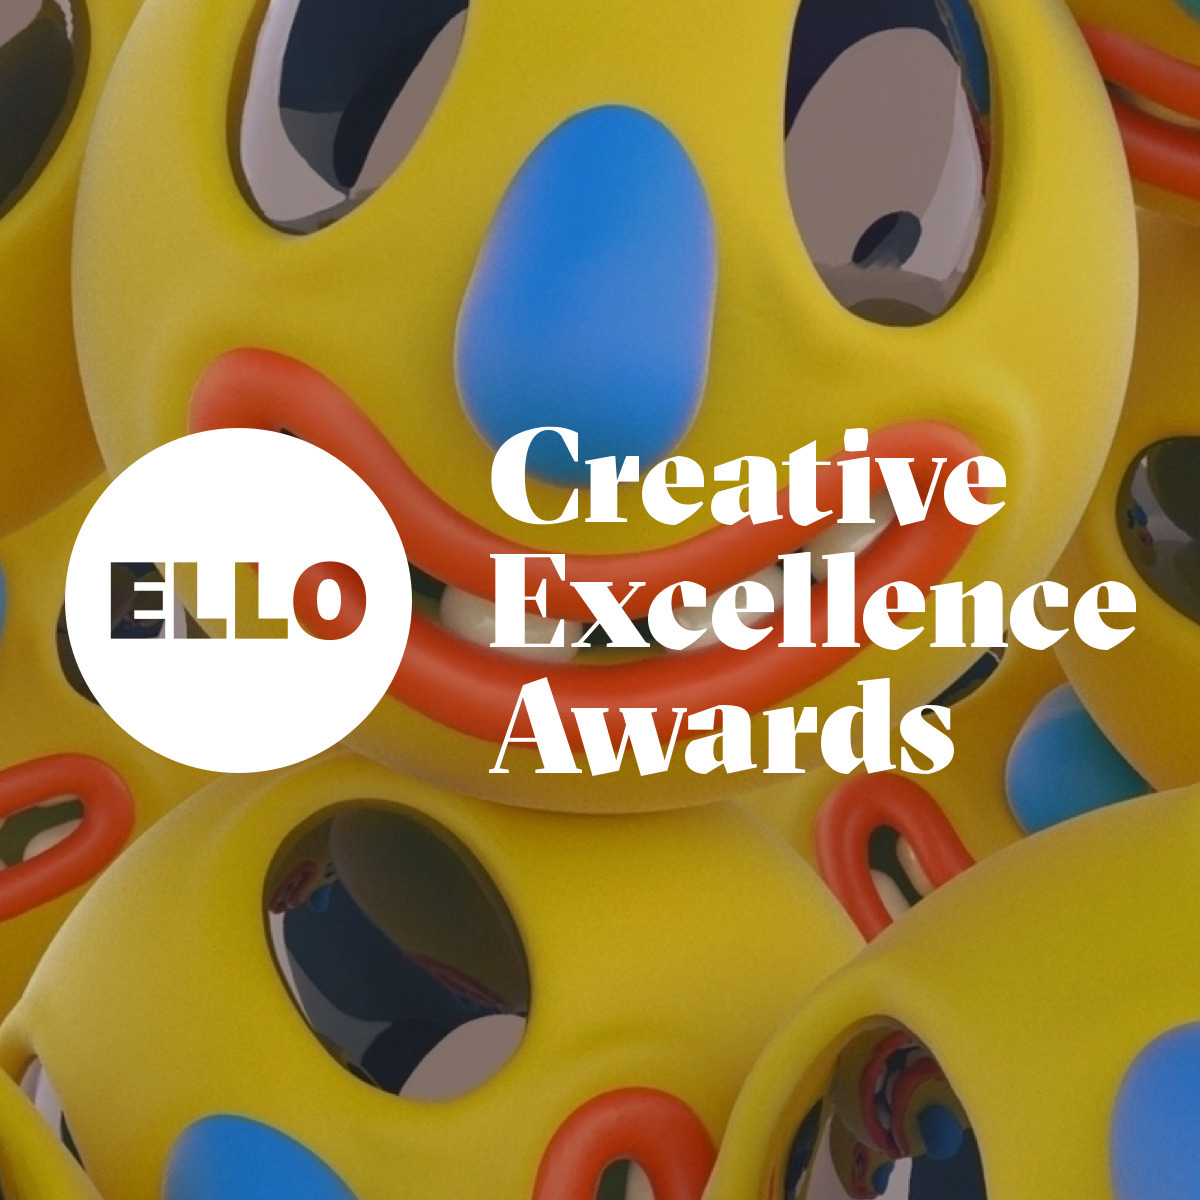 2017 Creative Excellence Awards